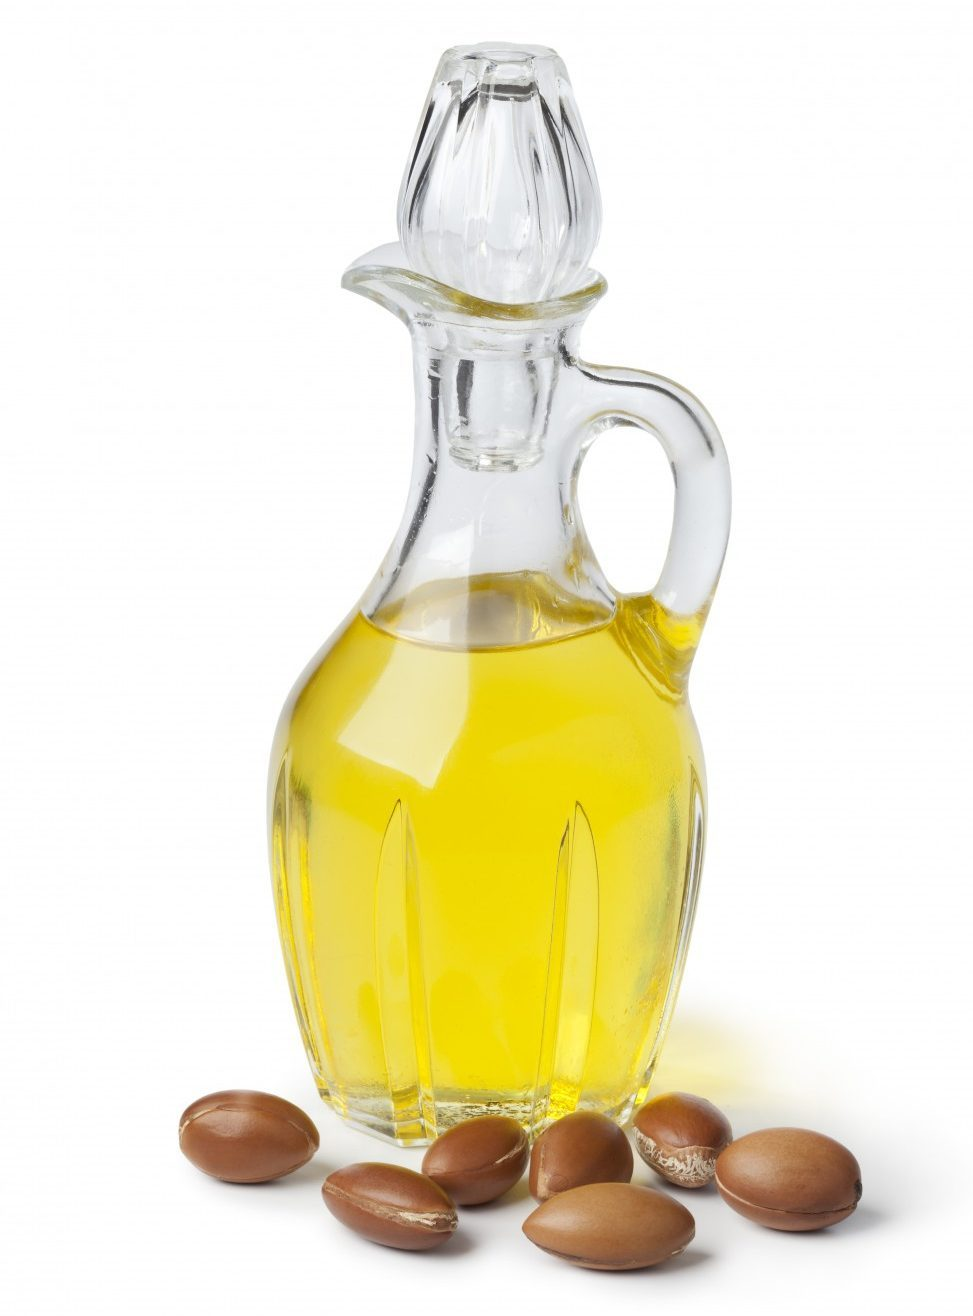 argan oil for hair growth and thickness